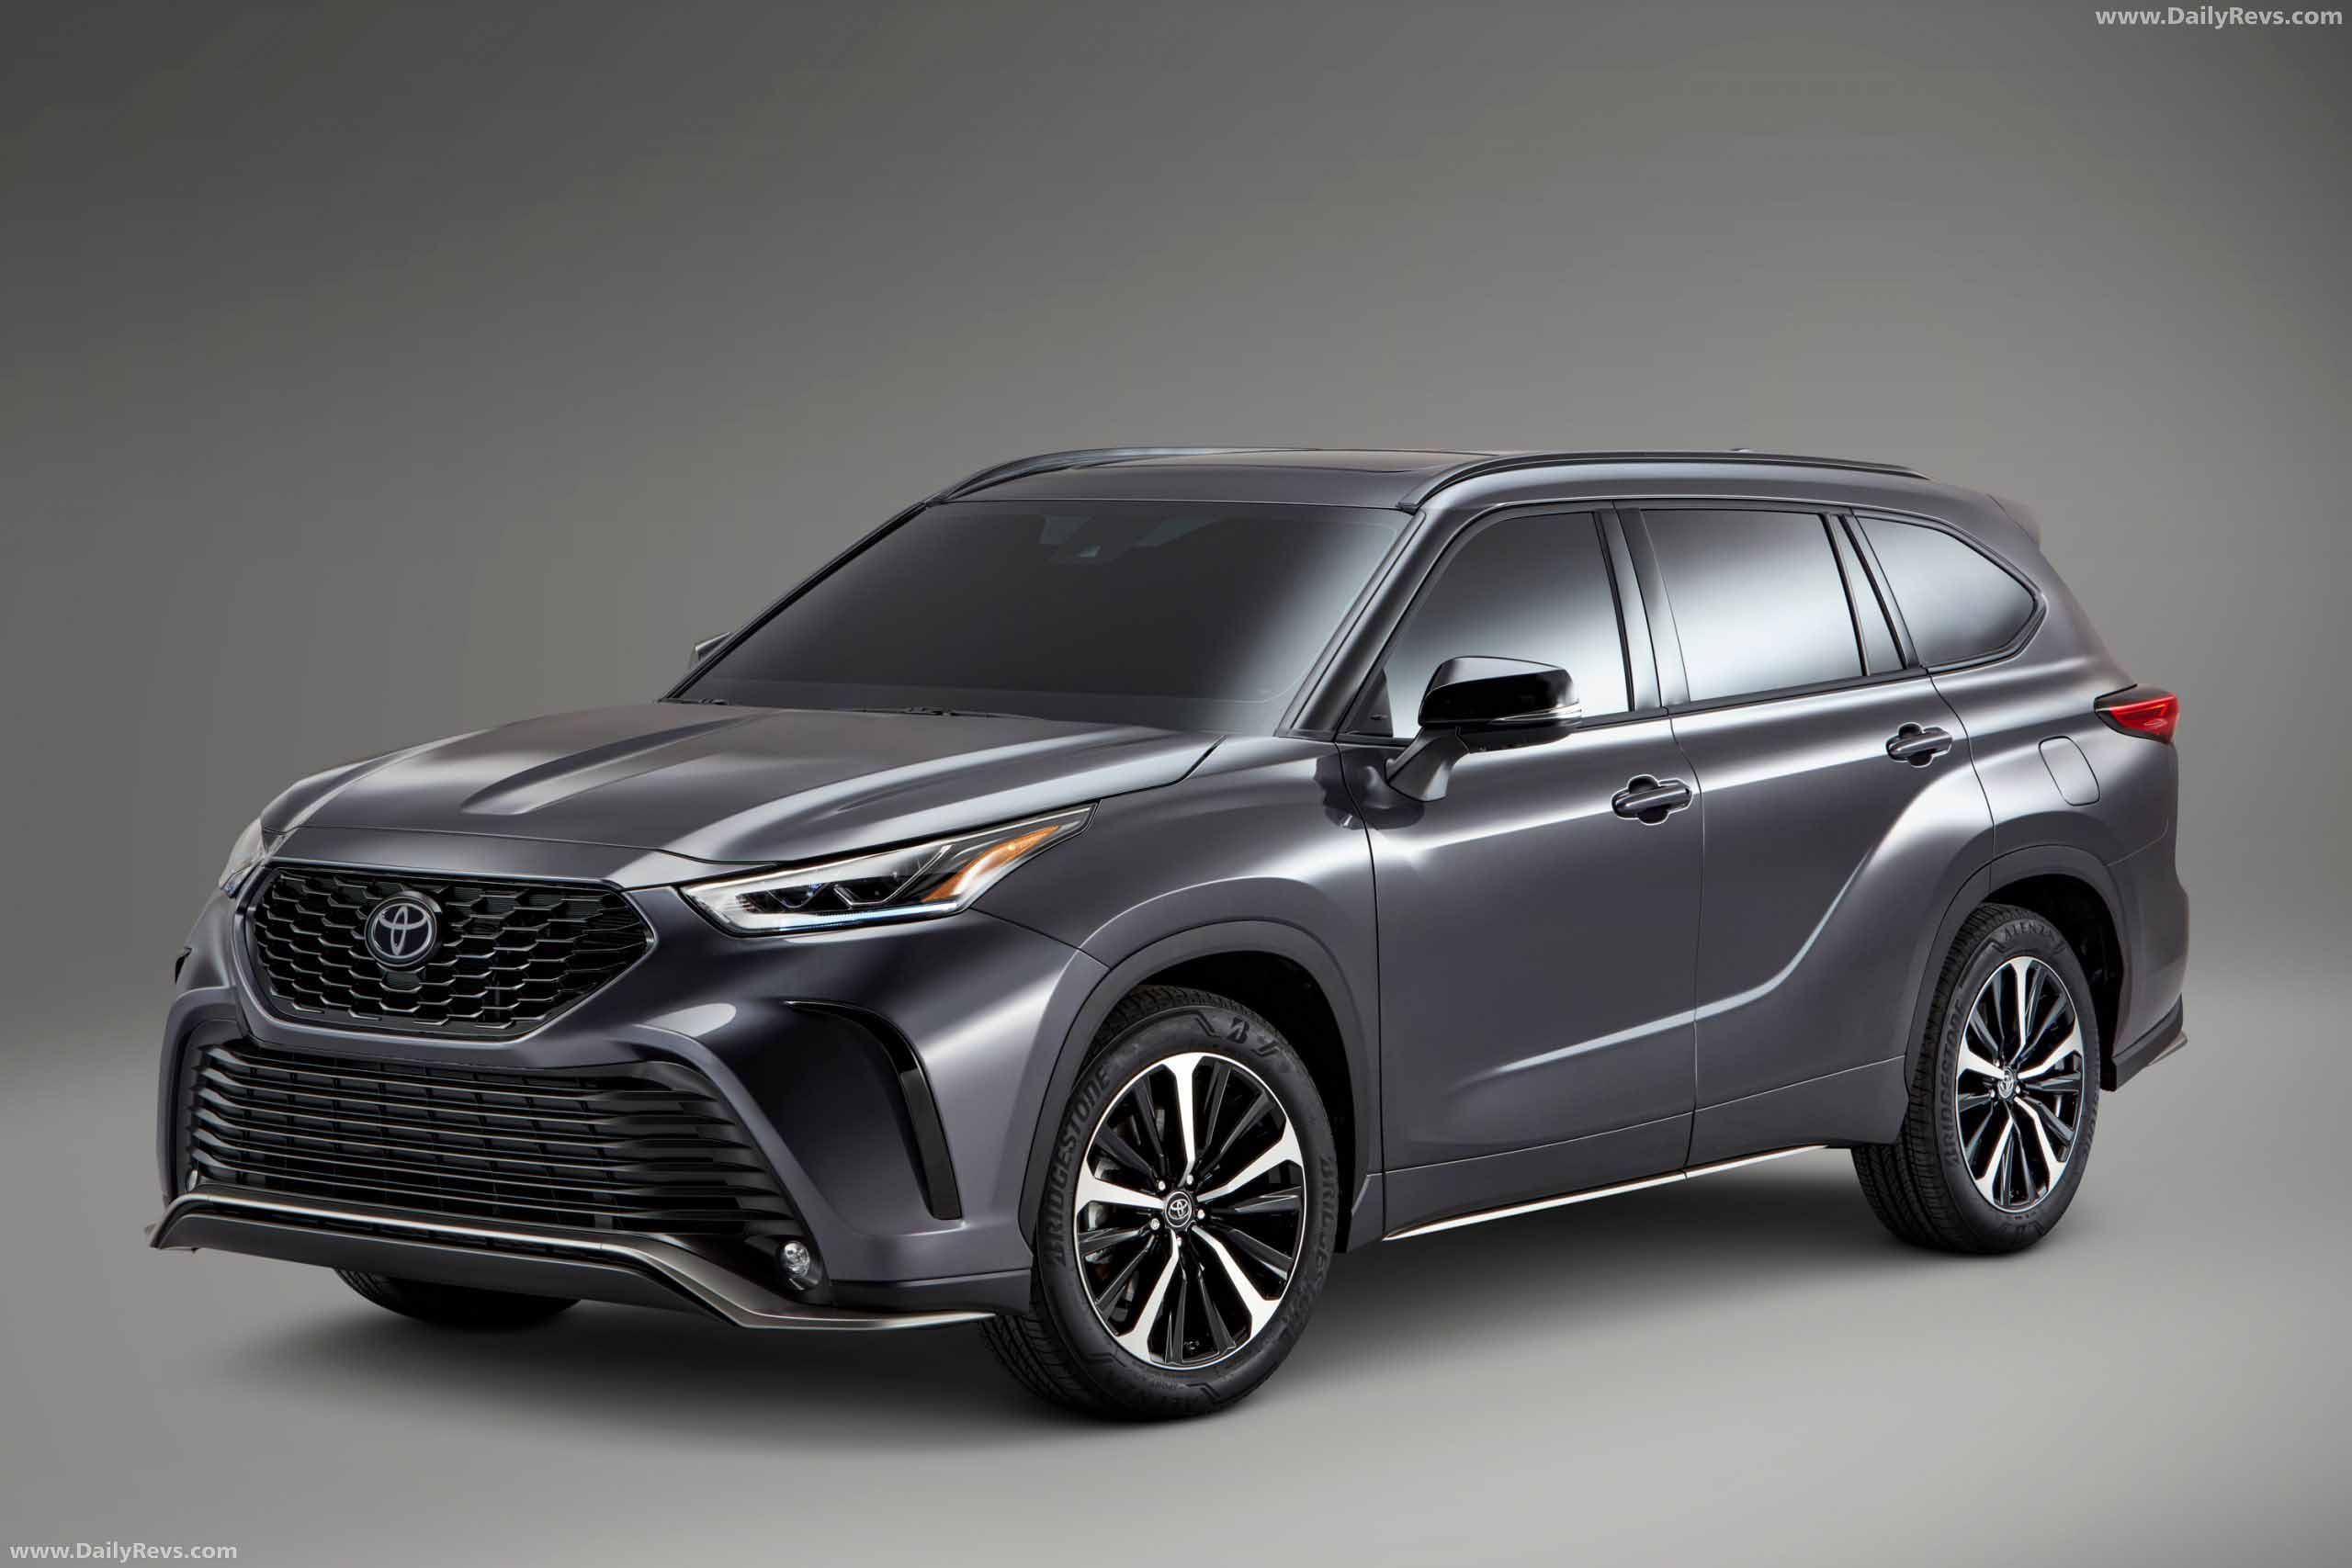 2021 toyota highlander xse - hd pictures, videos, specs